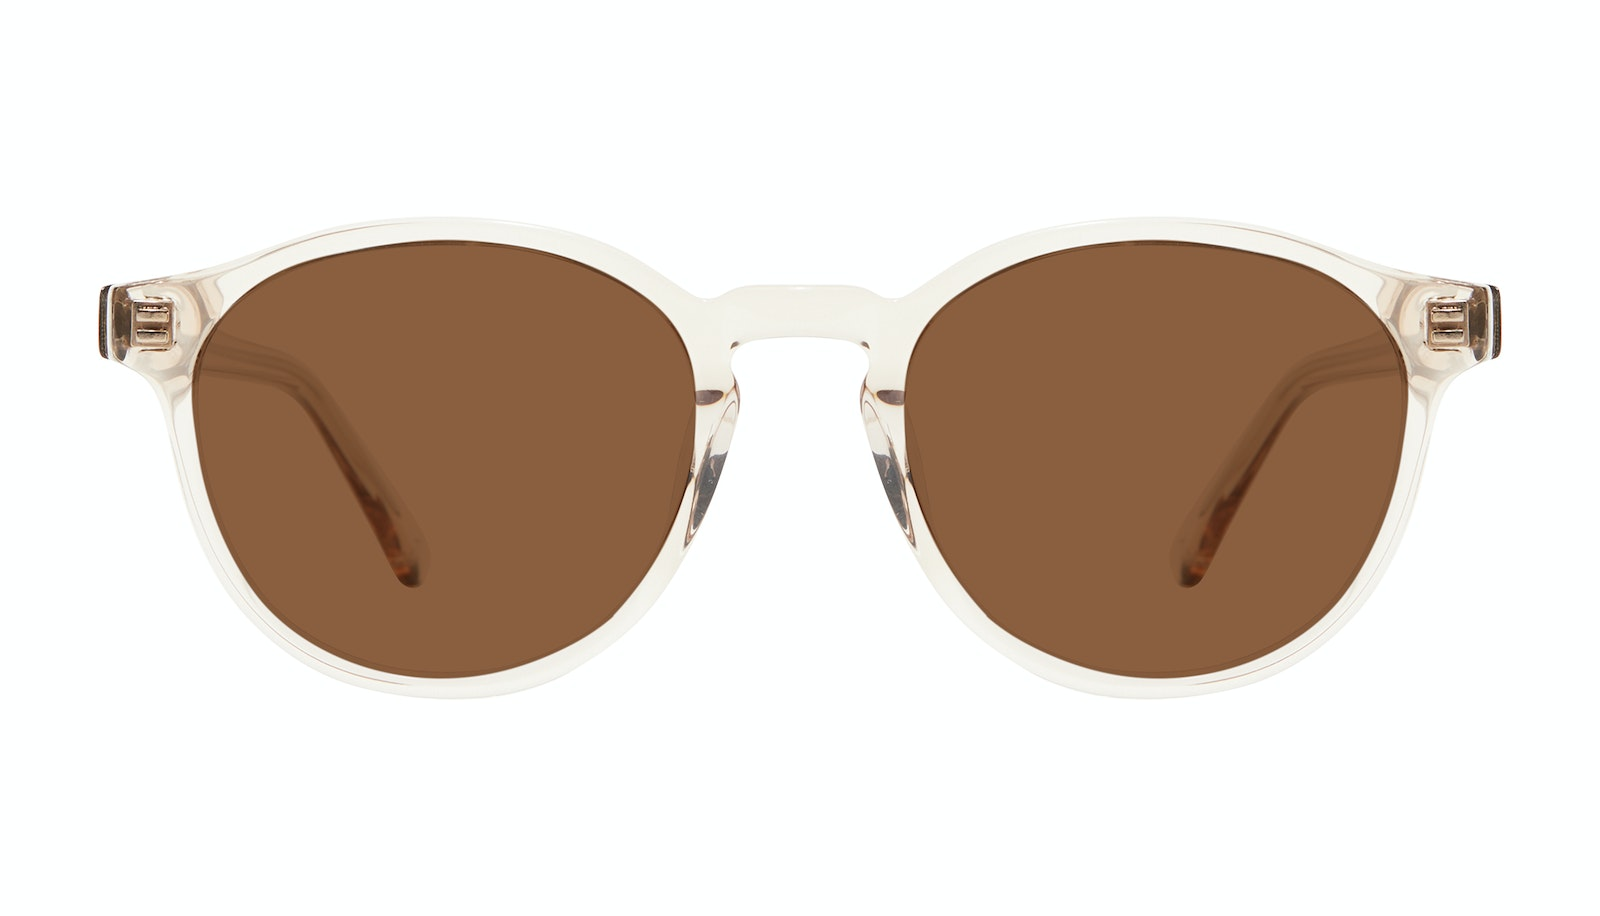 Affordable Fashion Glasses Round Sunglasses Men Aussie Clay